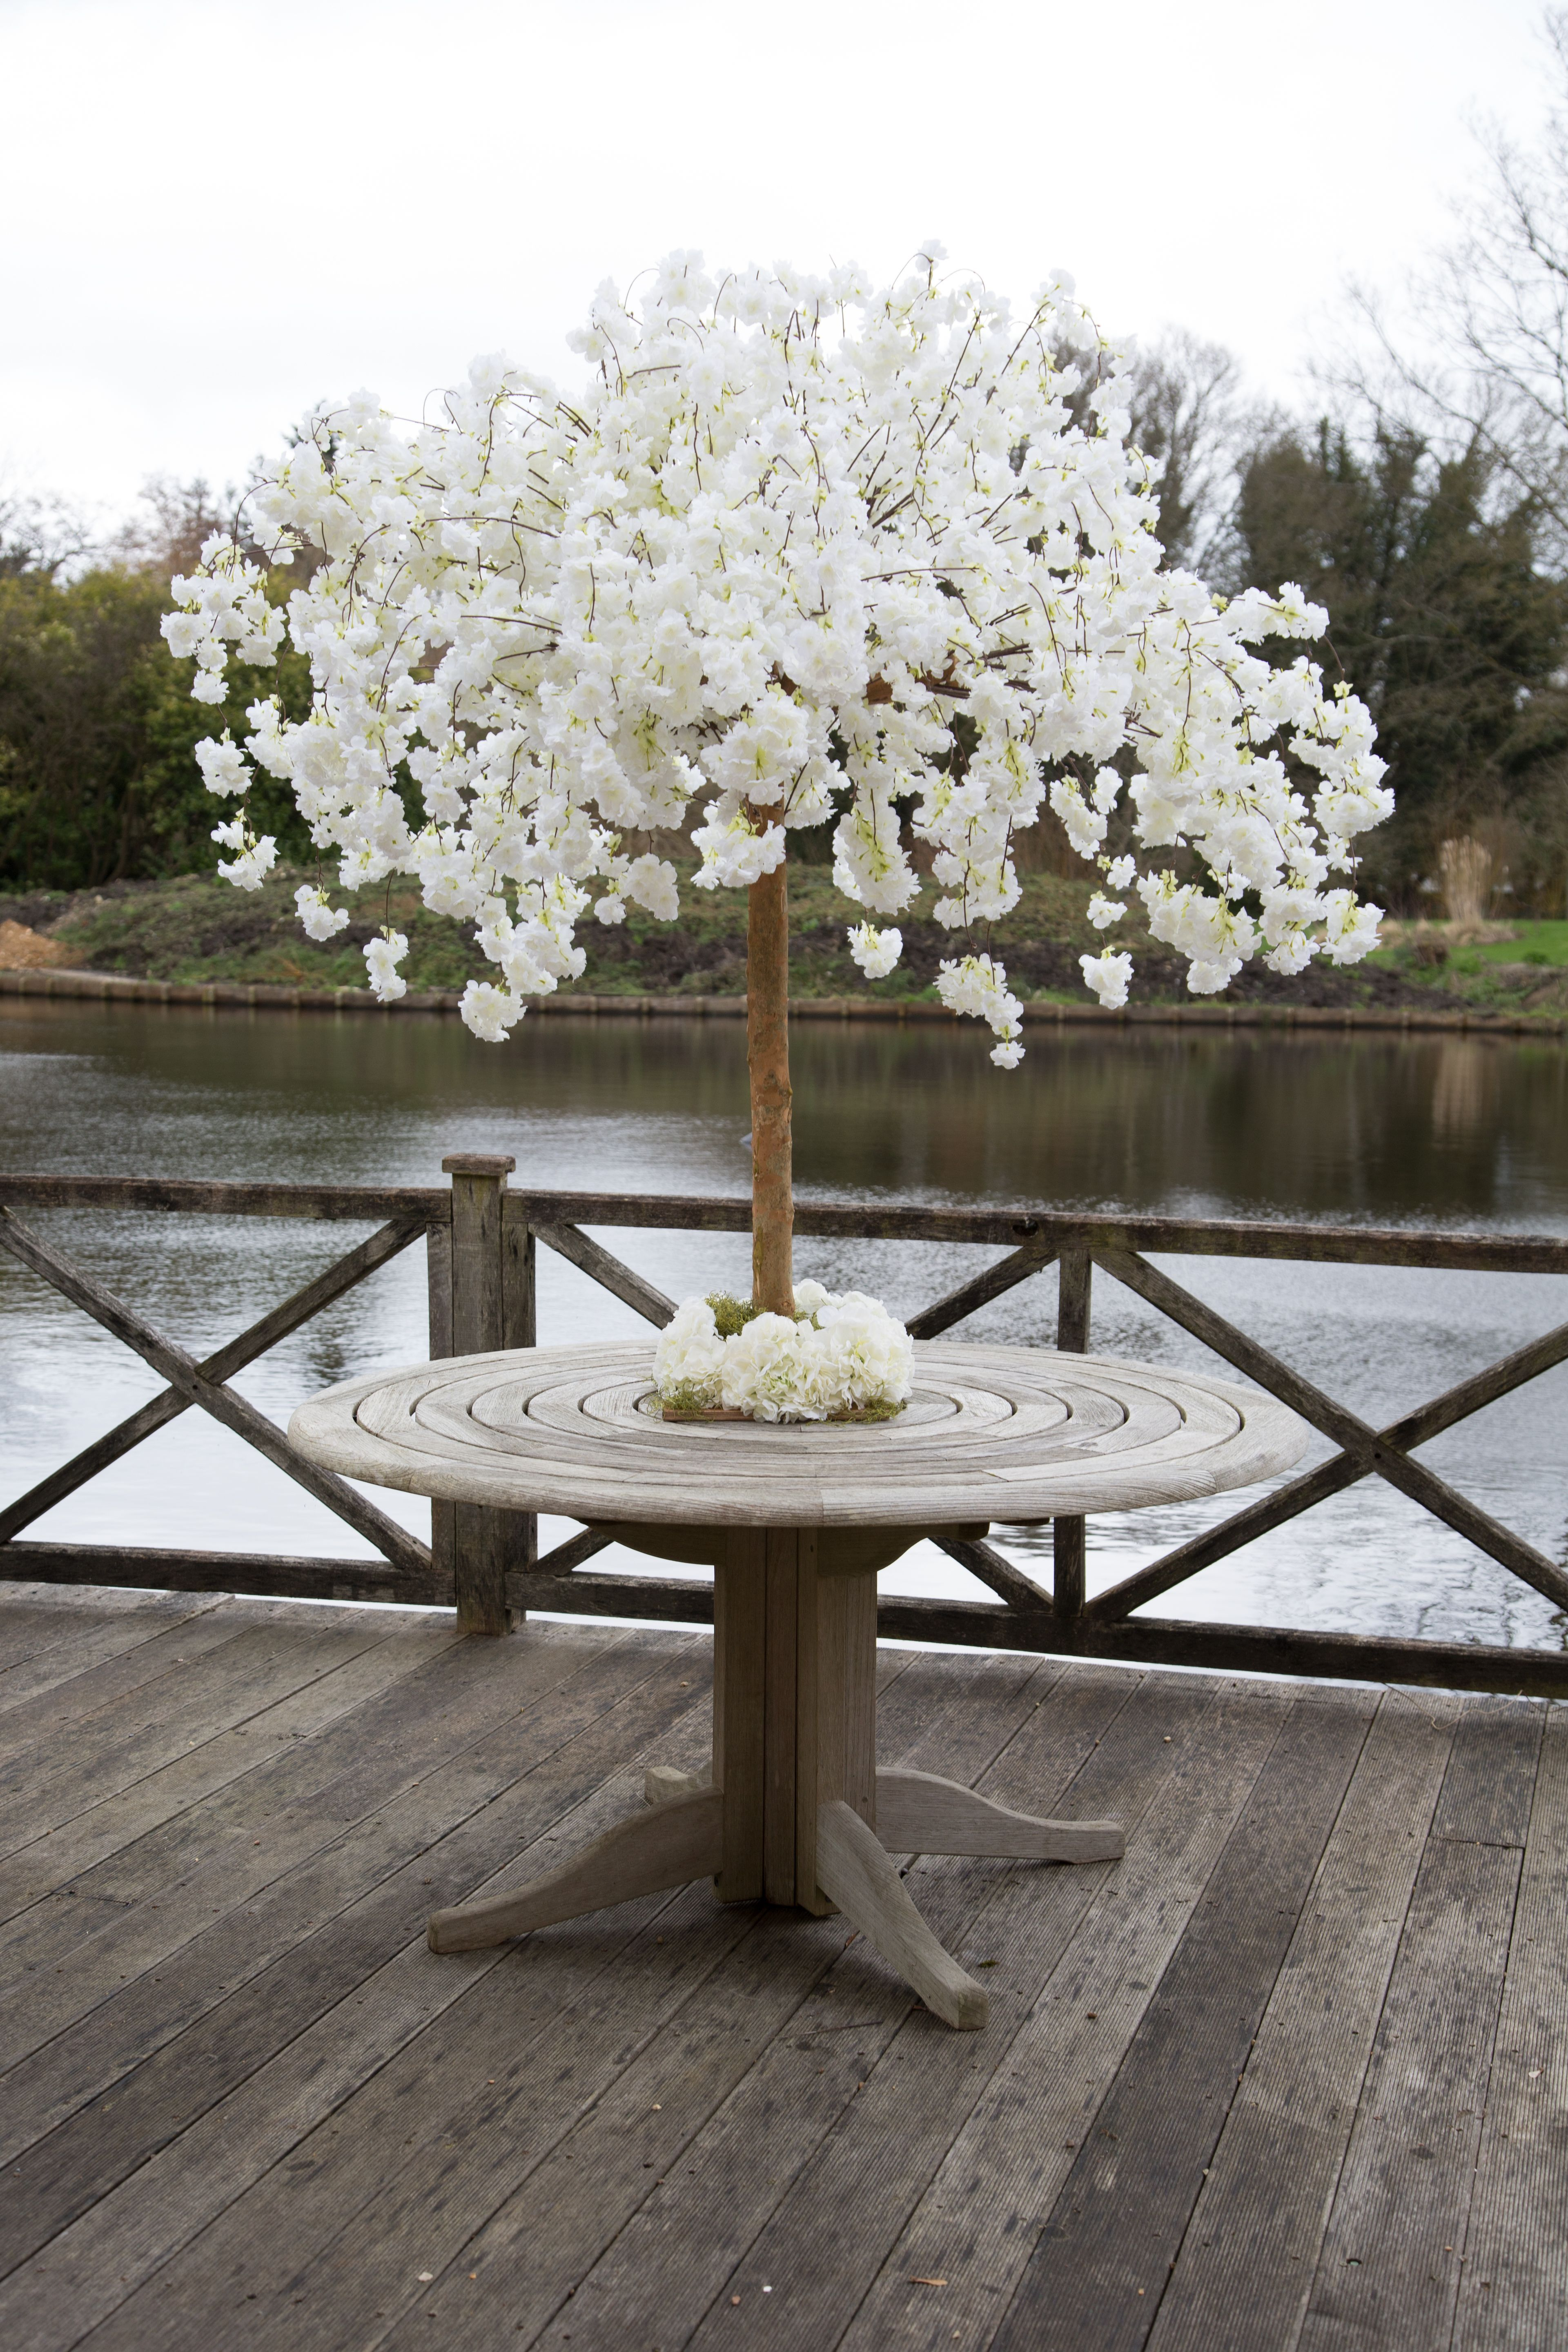 Hanging Cherry Blossom Trees For Hire Large Floral Arrangements Blossom Trees Cherry Blossom Tree